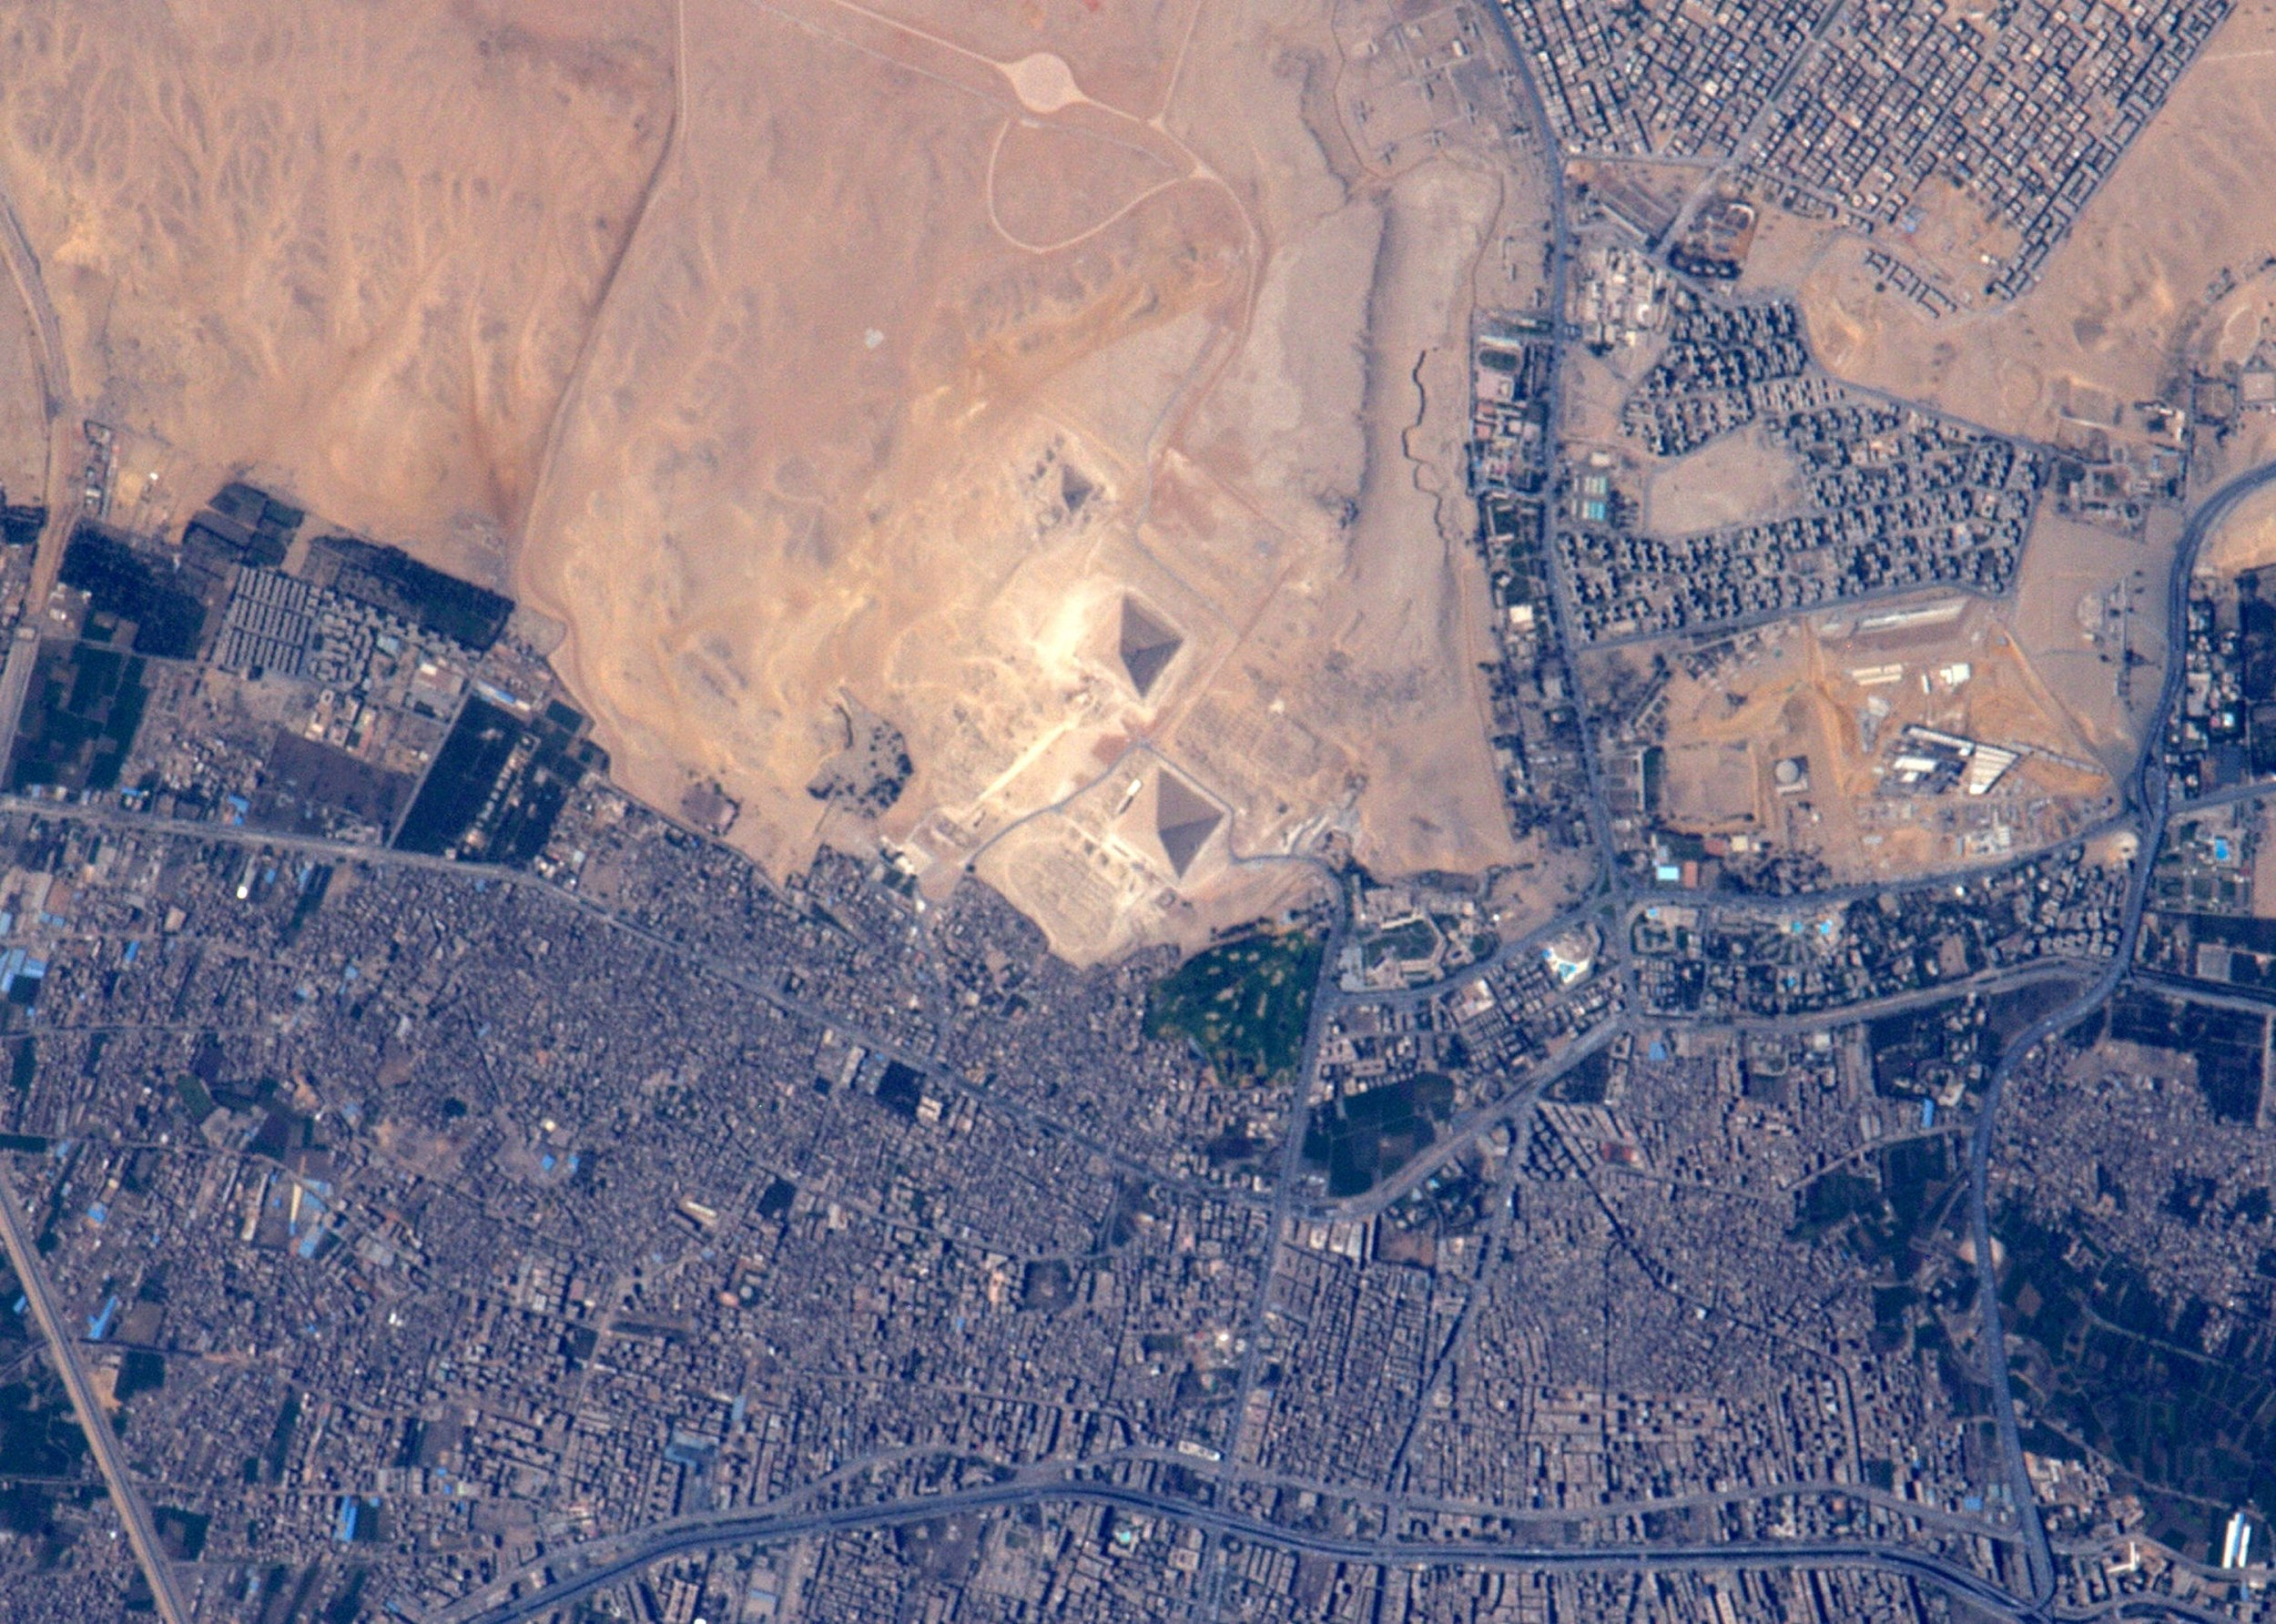 Egypt Space Agency